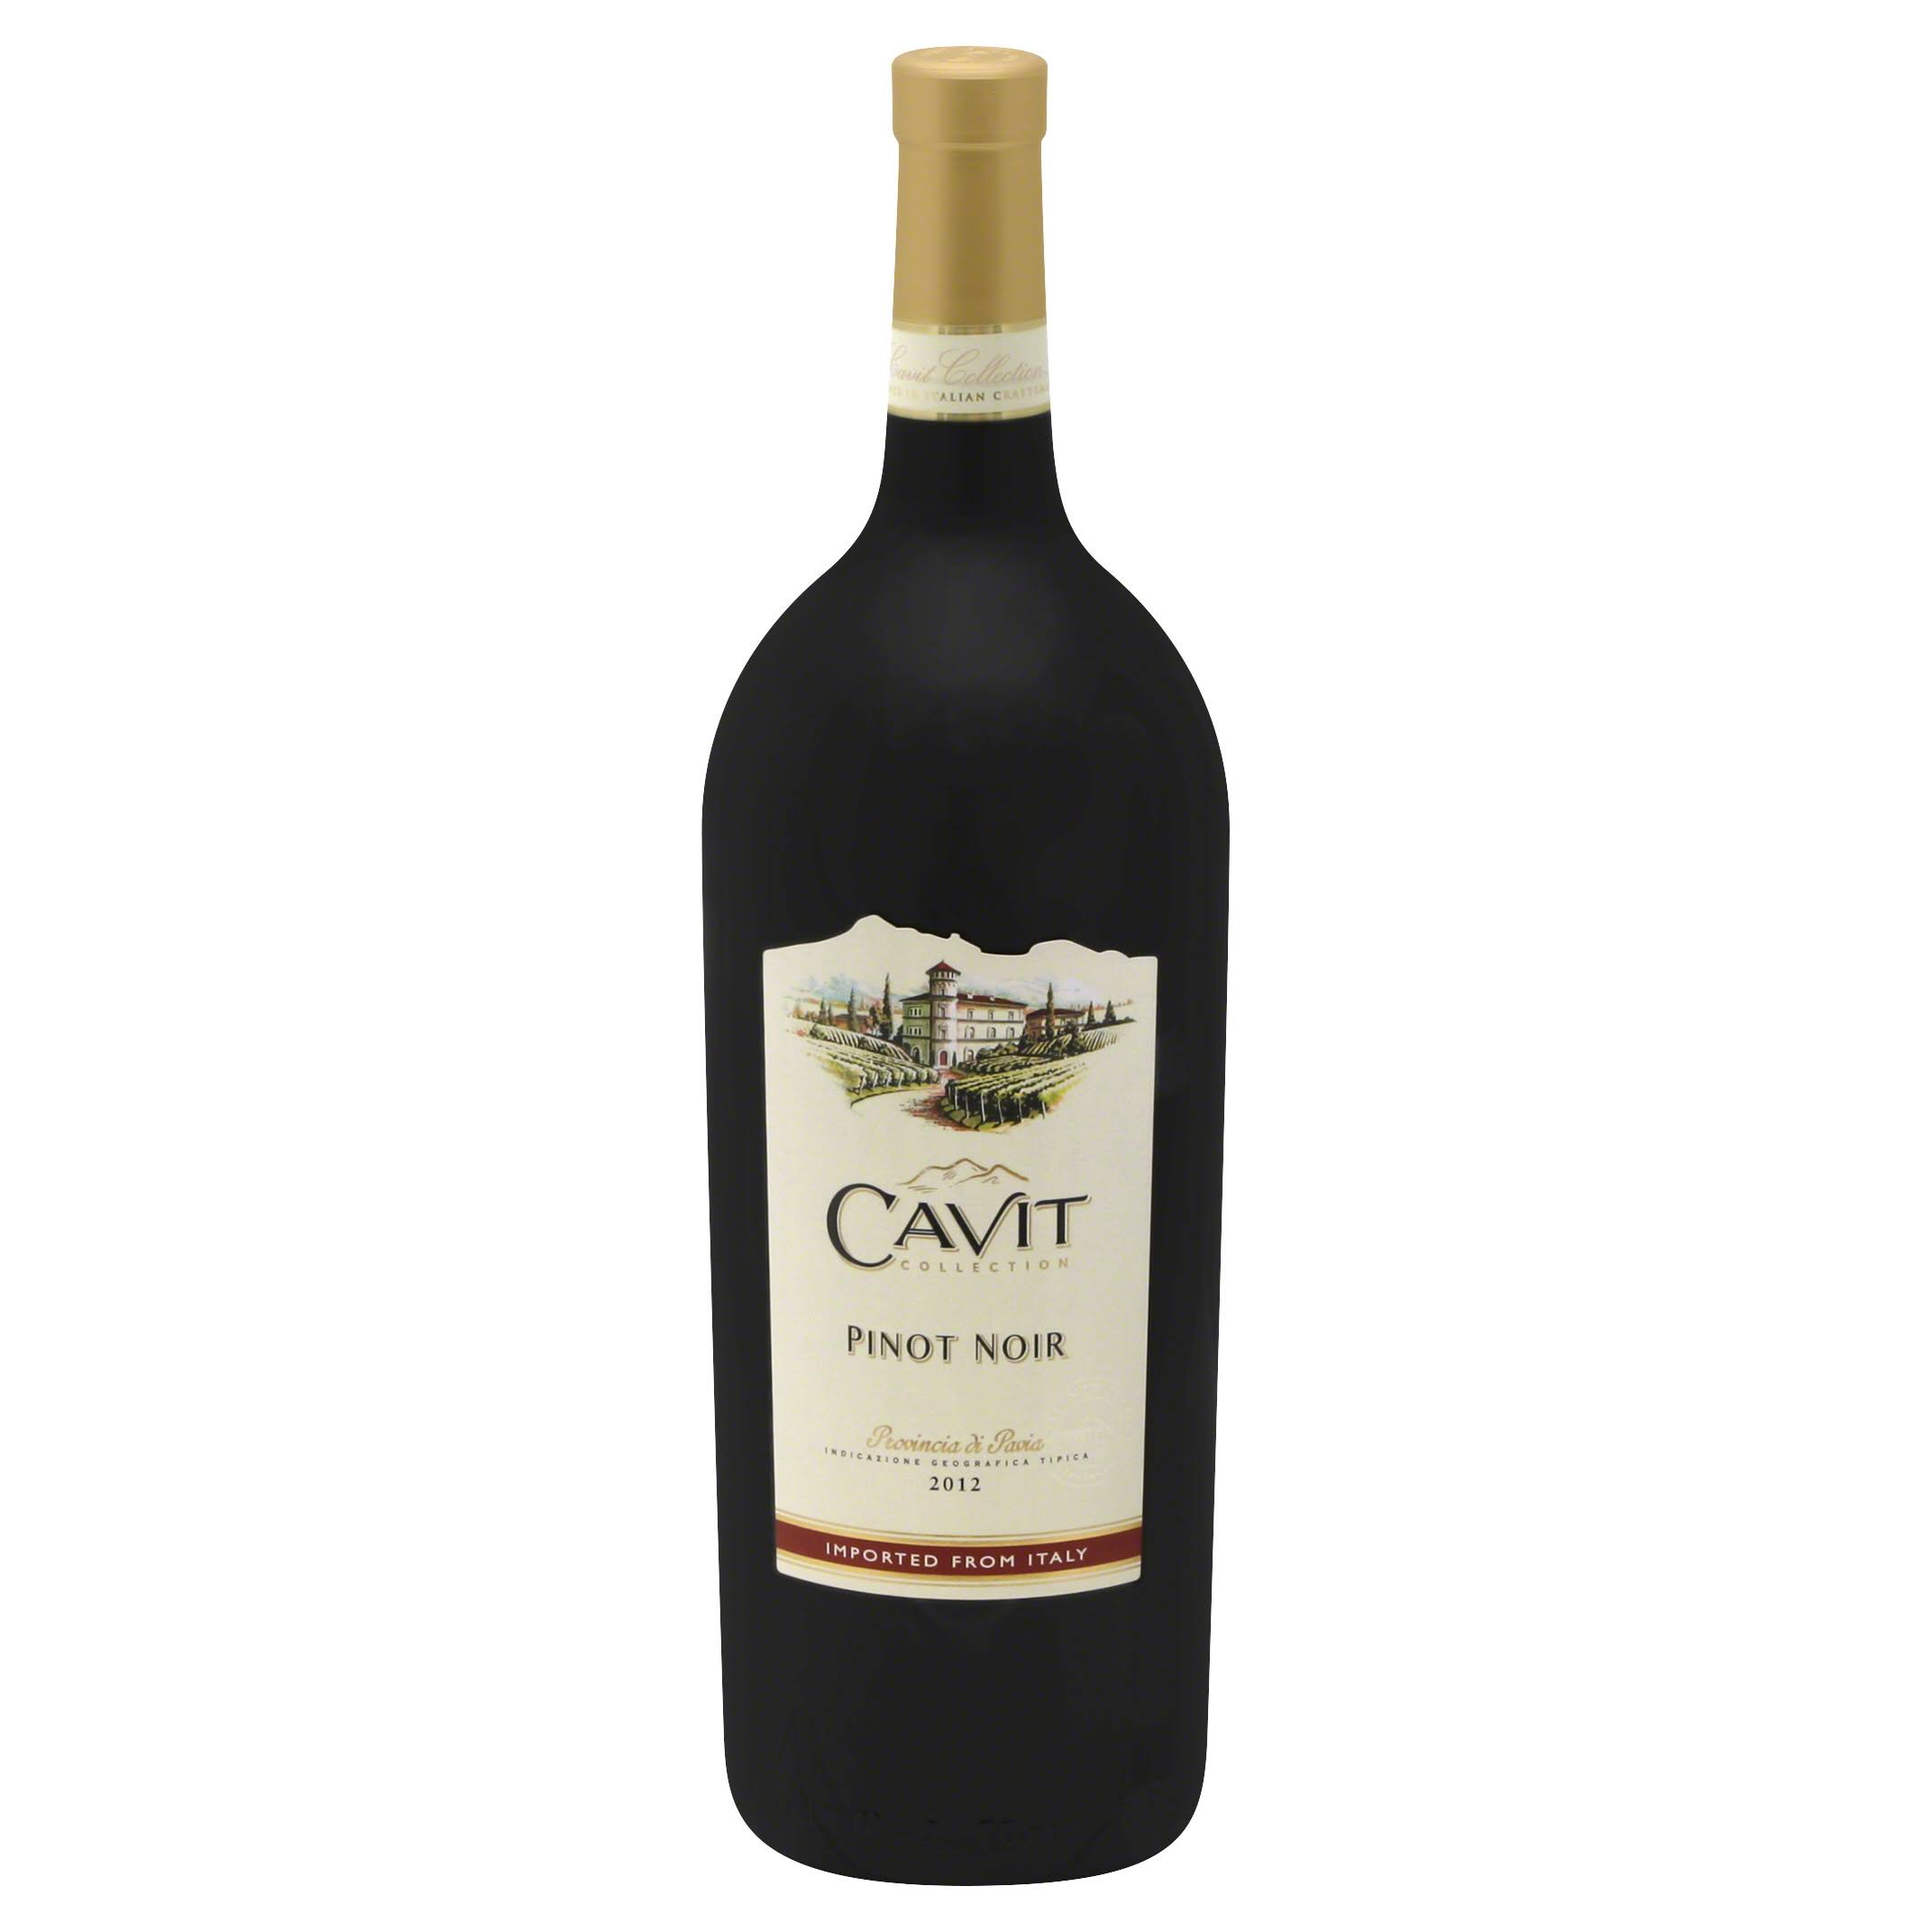 Cavit Collection Pinot Noir Provincia Di Pavia